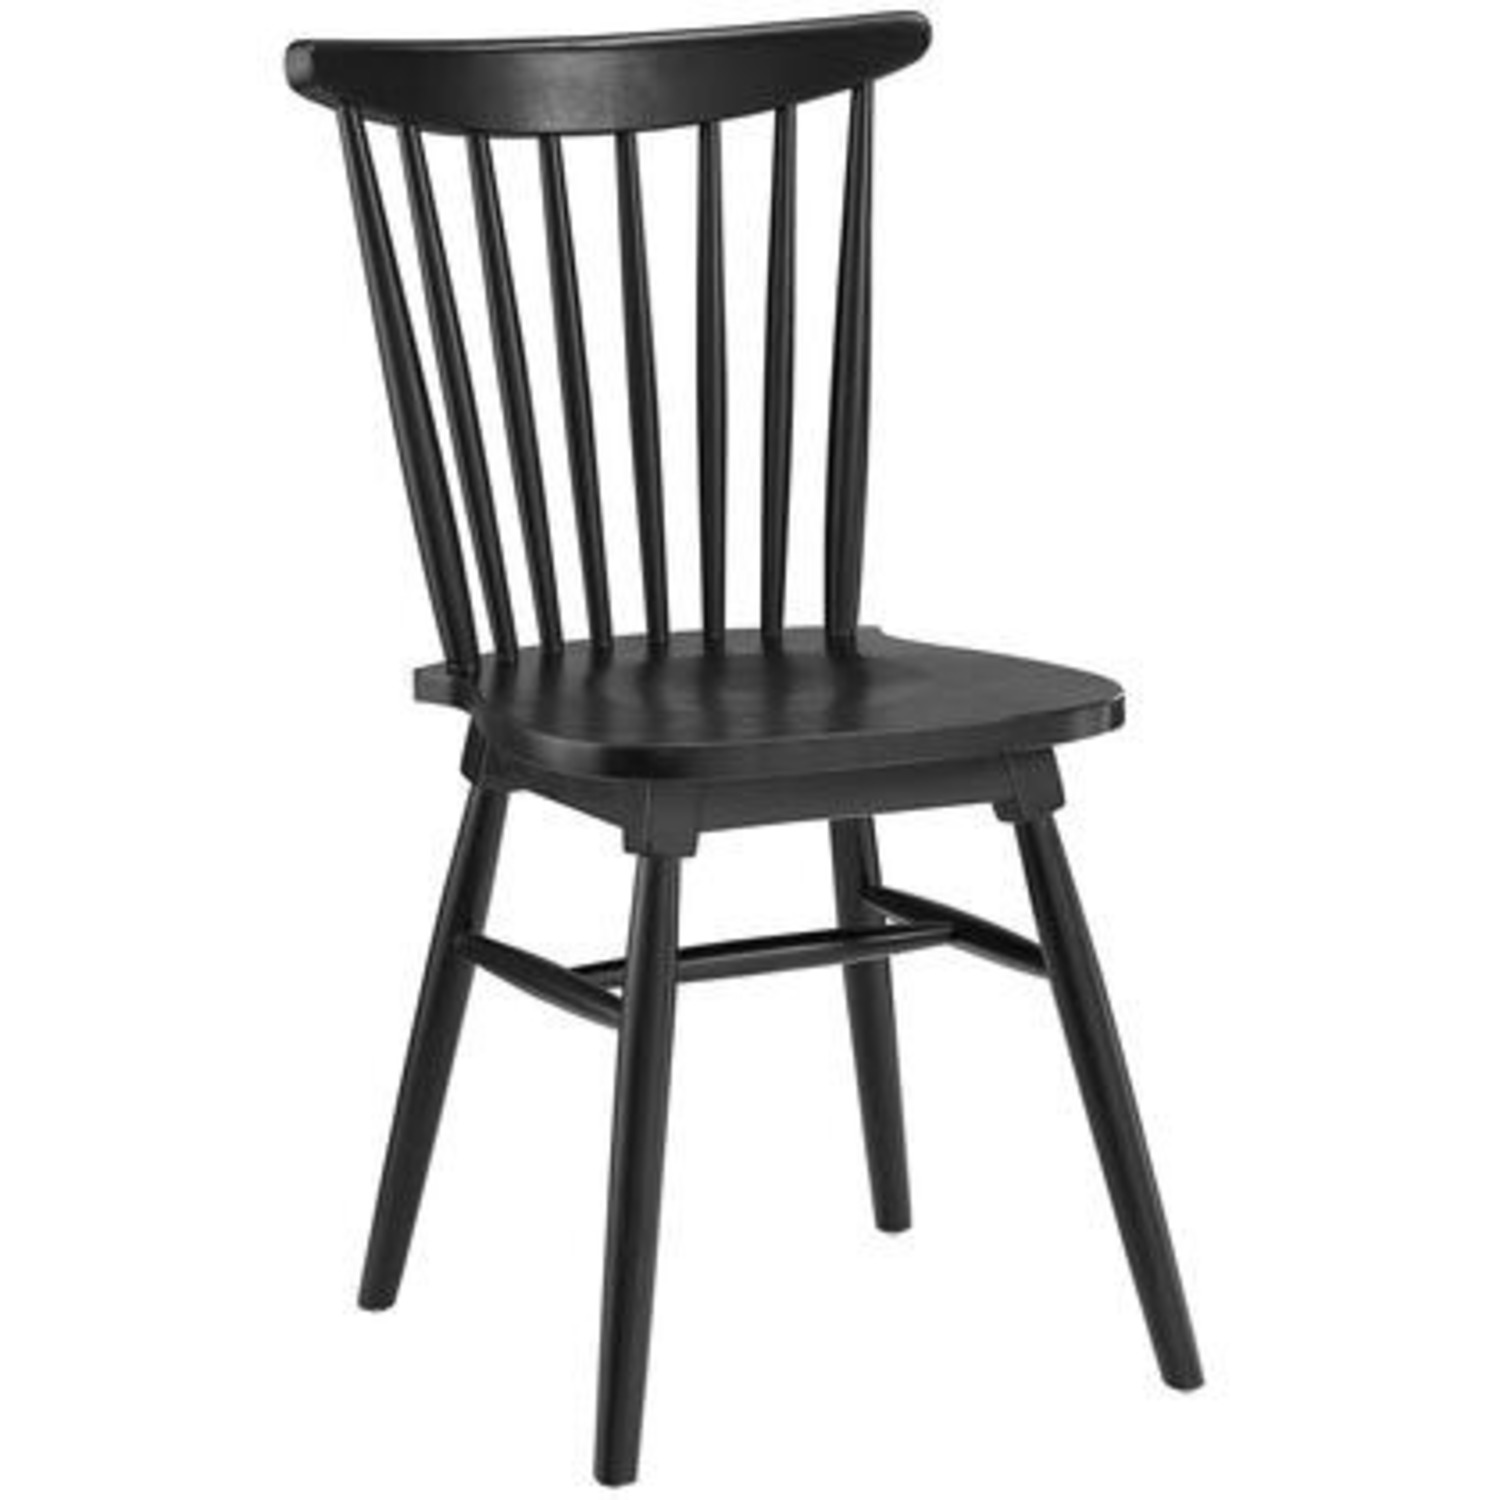 Contemporary Dining Chair In Black Elm Wood Finish - image-0